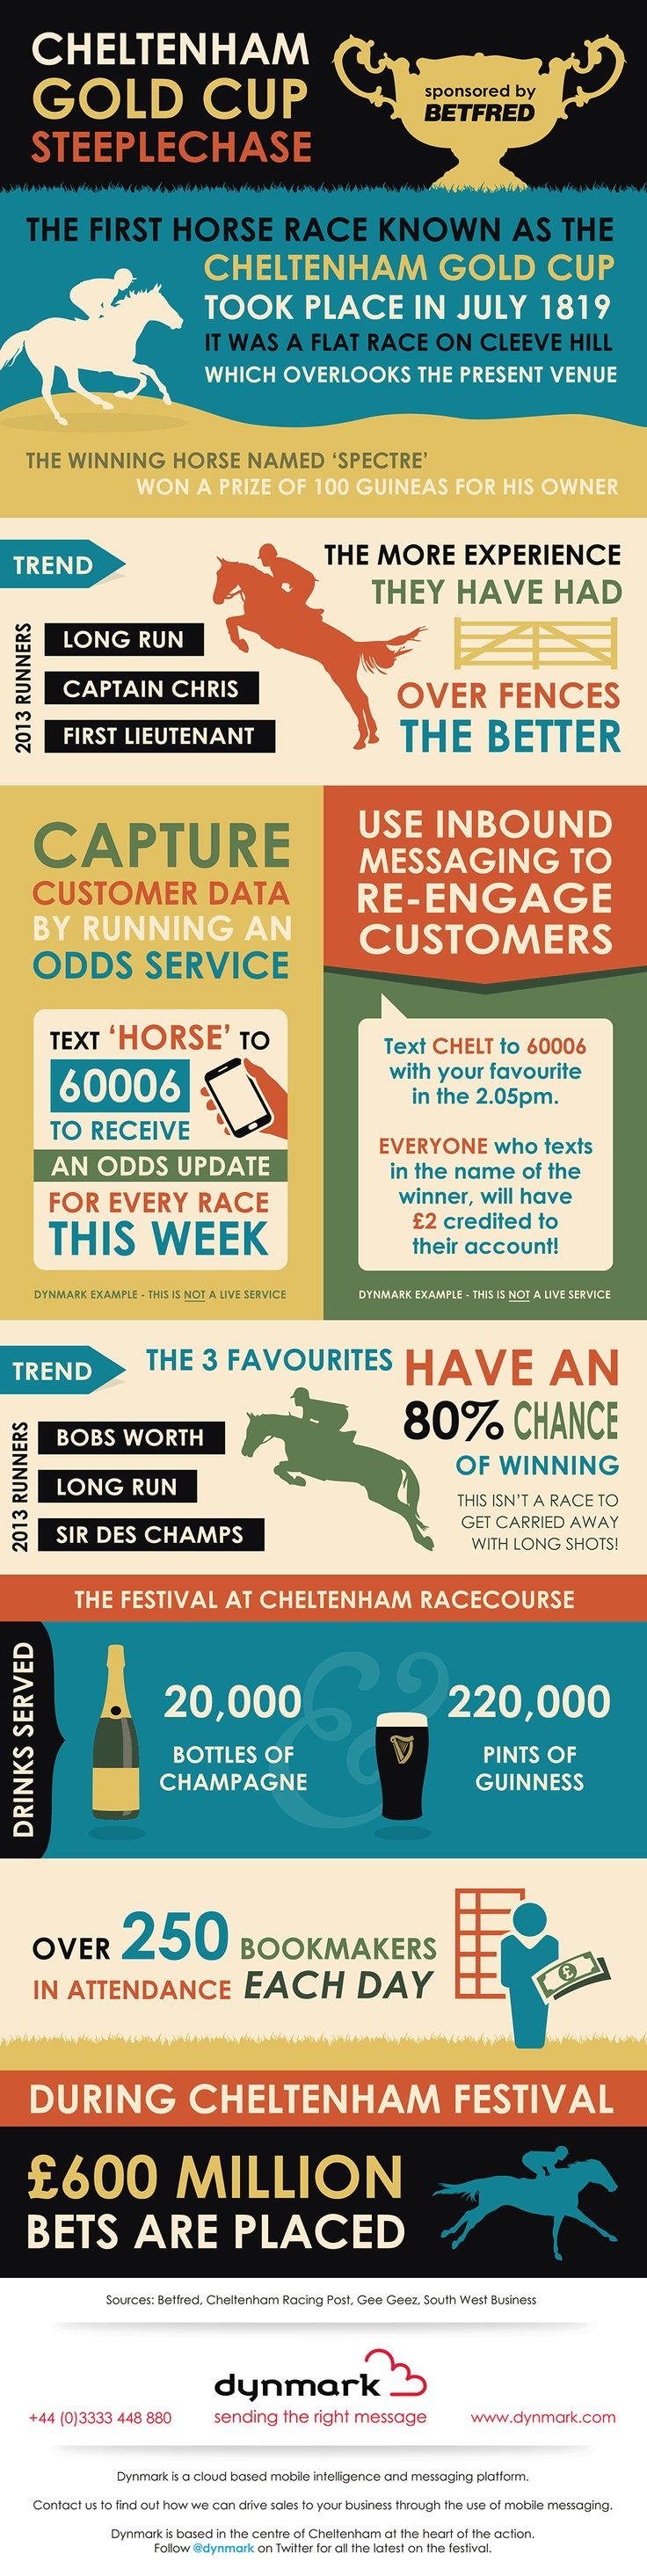 With Cheltenham Festival on our doorstep, we thought we would share some of our thoughts and ideas on racing, mobile messaging and the Gold Cup.